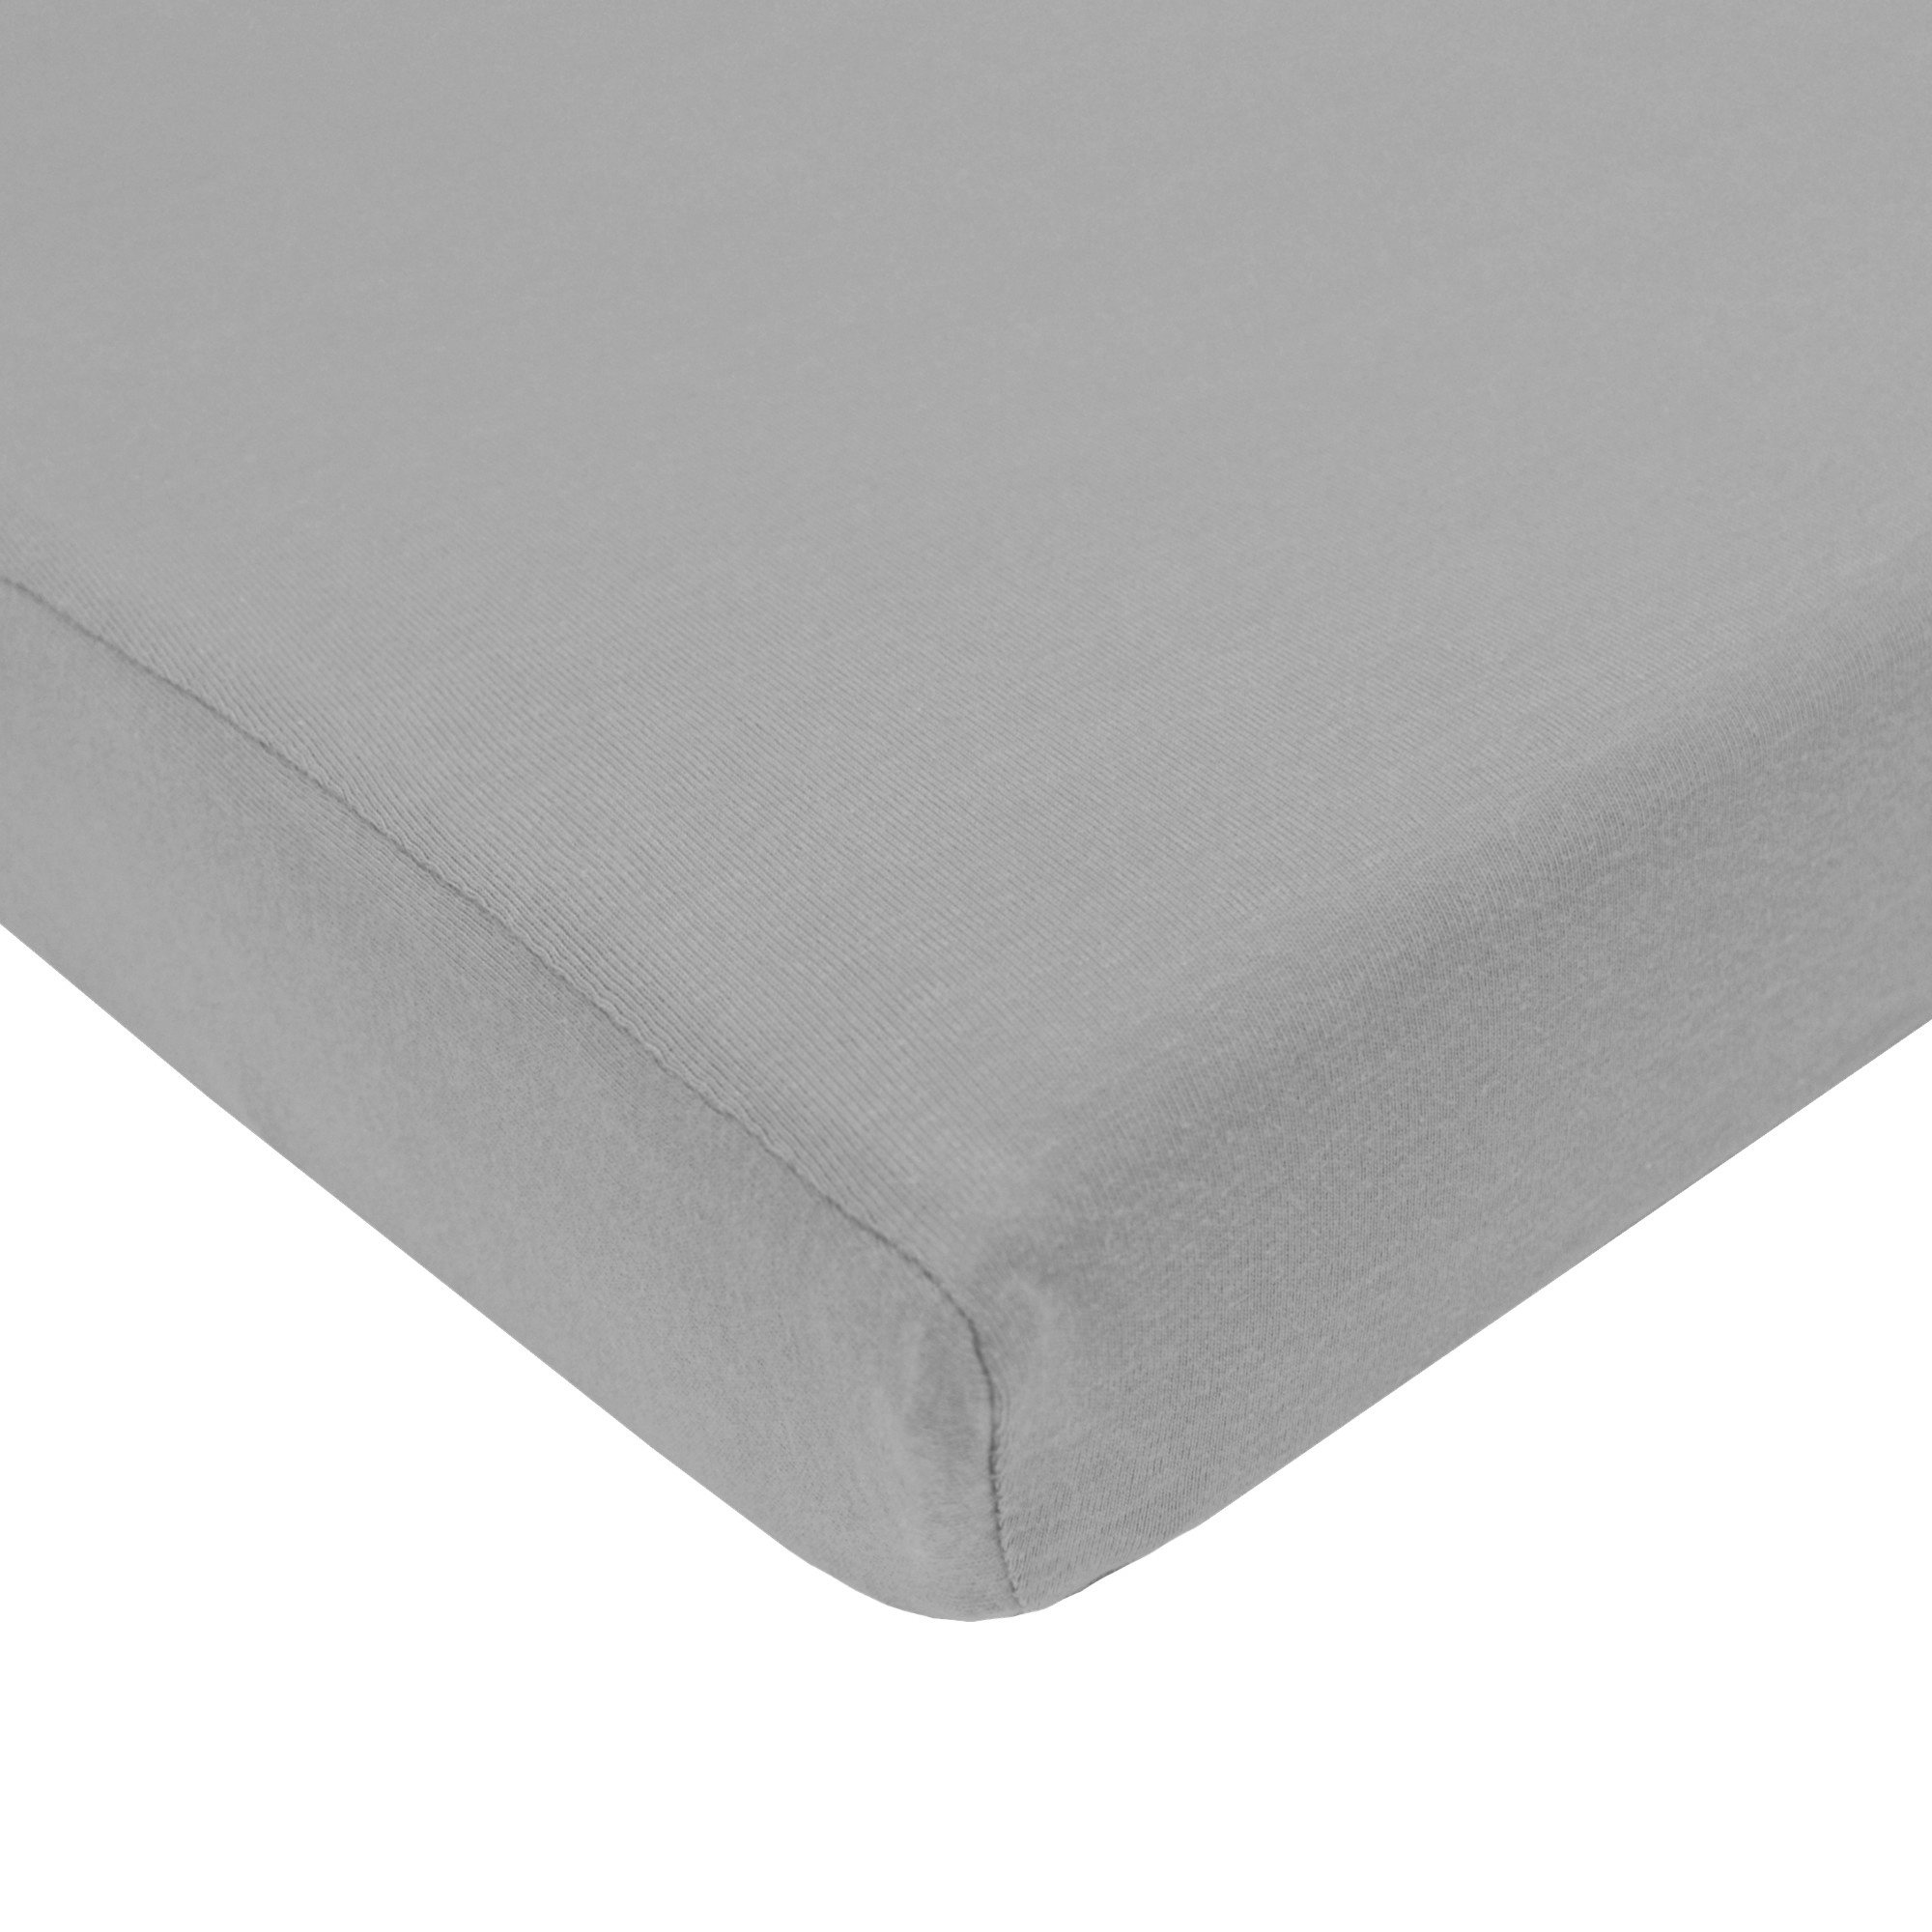 """TL Care Supreme 100% Natural Cotton Jersey Knit Fitted Crib Sheet for Standard Crib and Toddler Mattresses,Grey, 28"""" x 52"""", Soft Breathable, for Boys"""